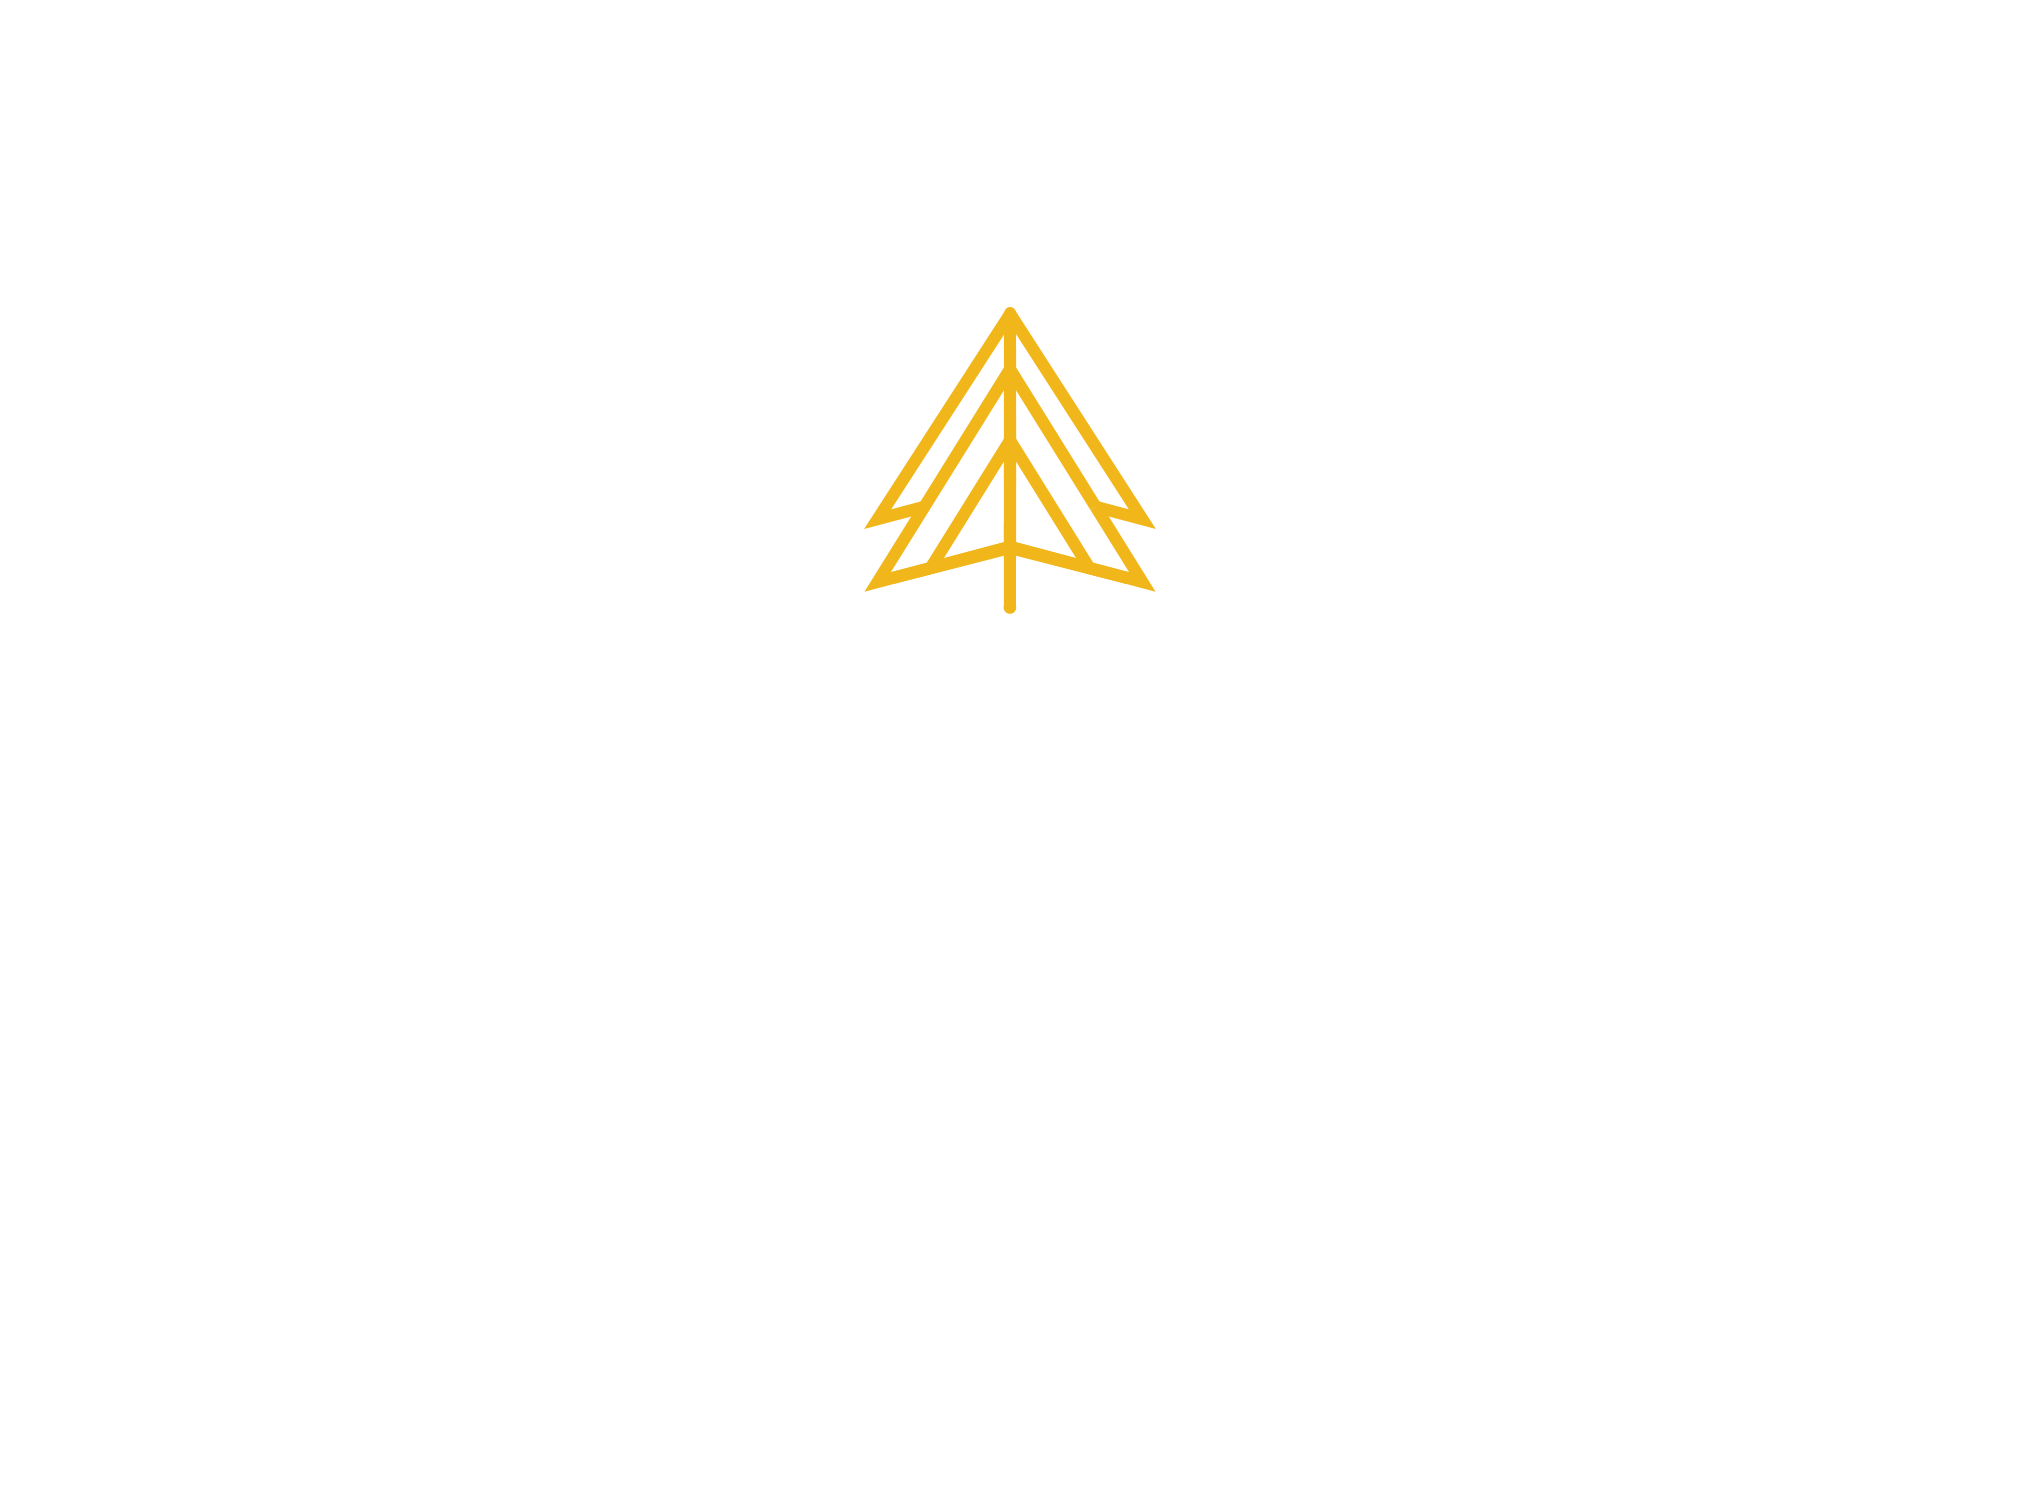 Canvas Graphic Design Studio logo